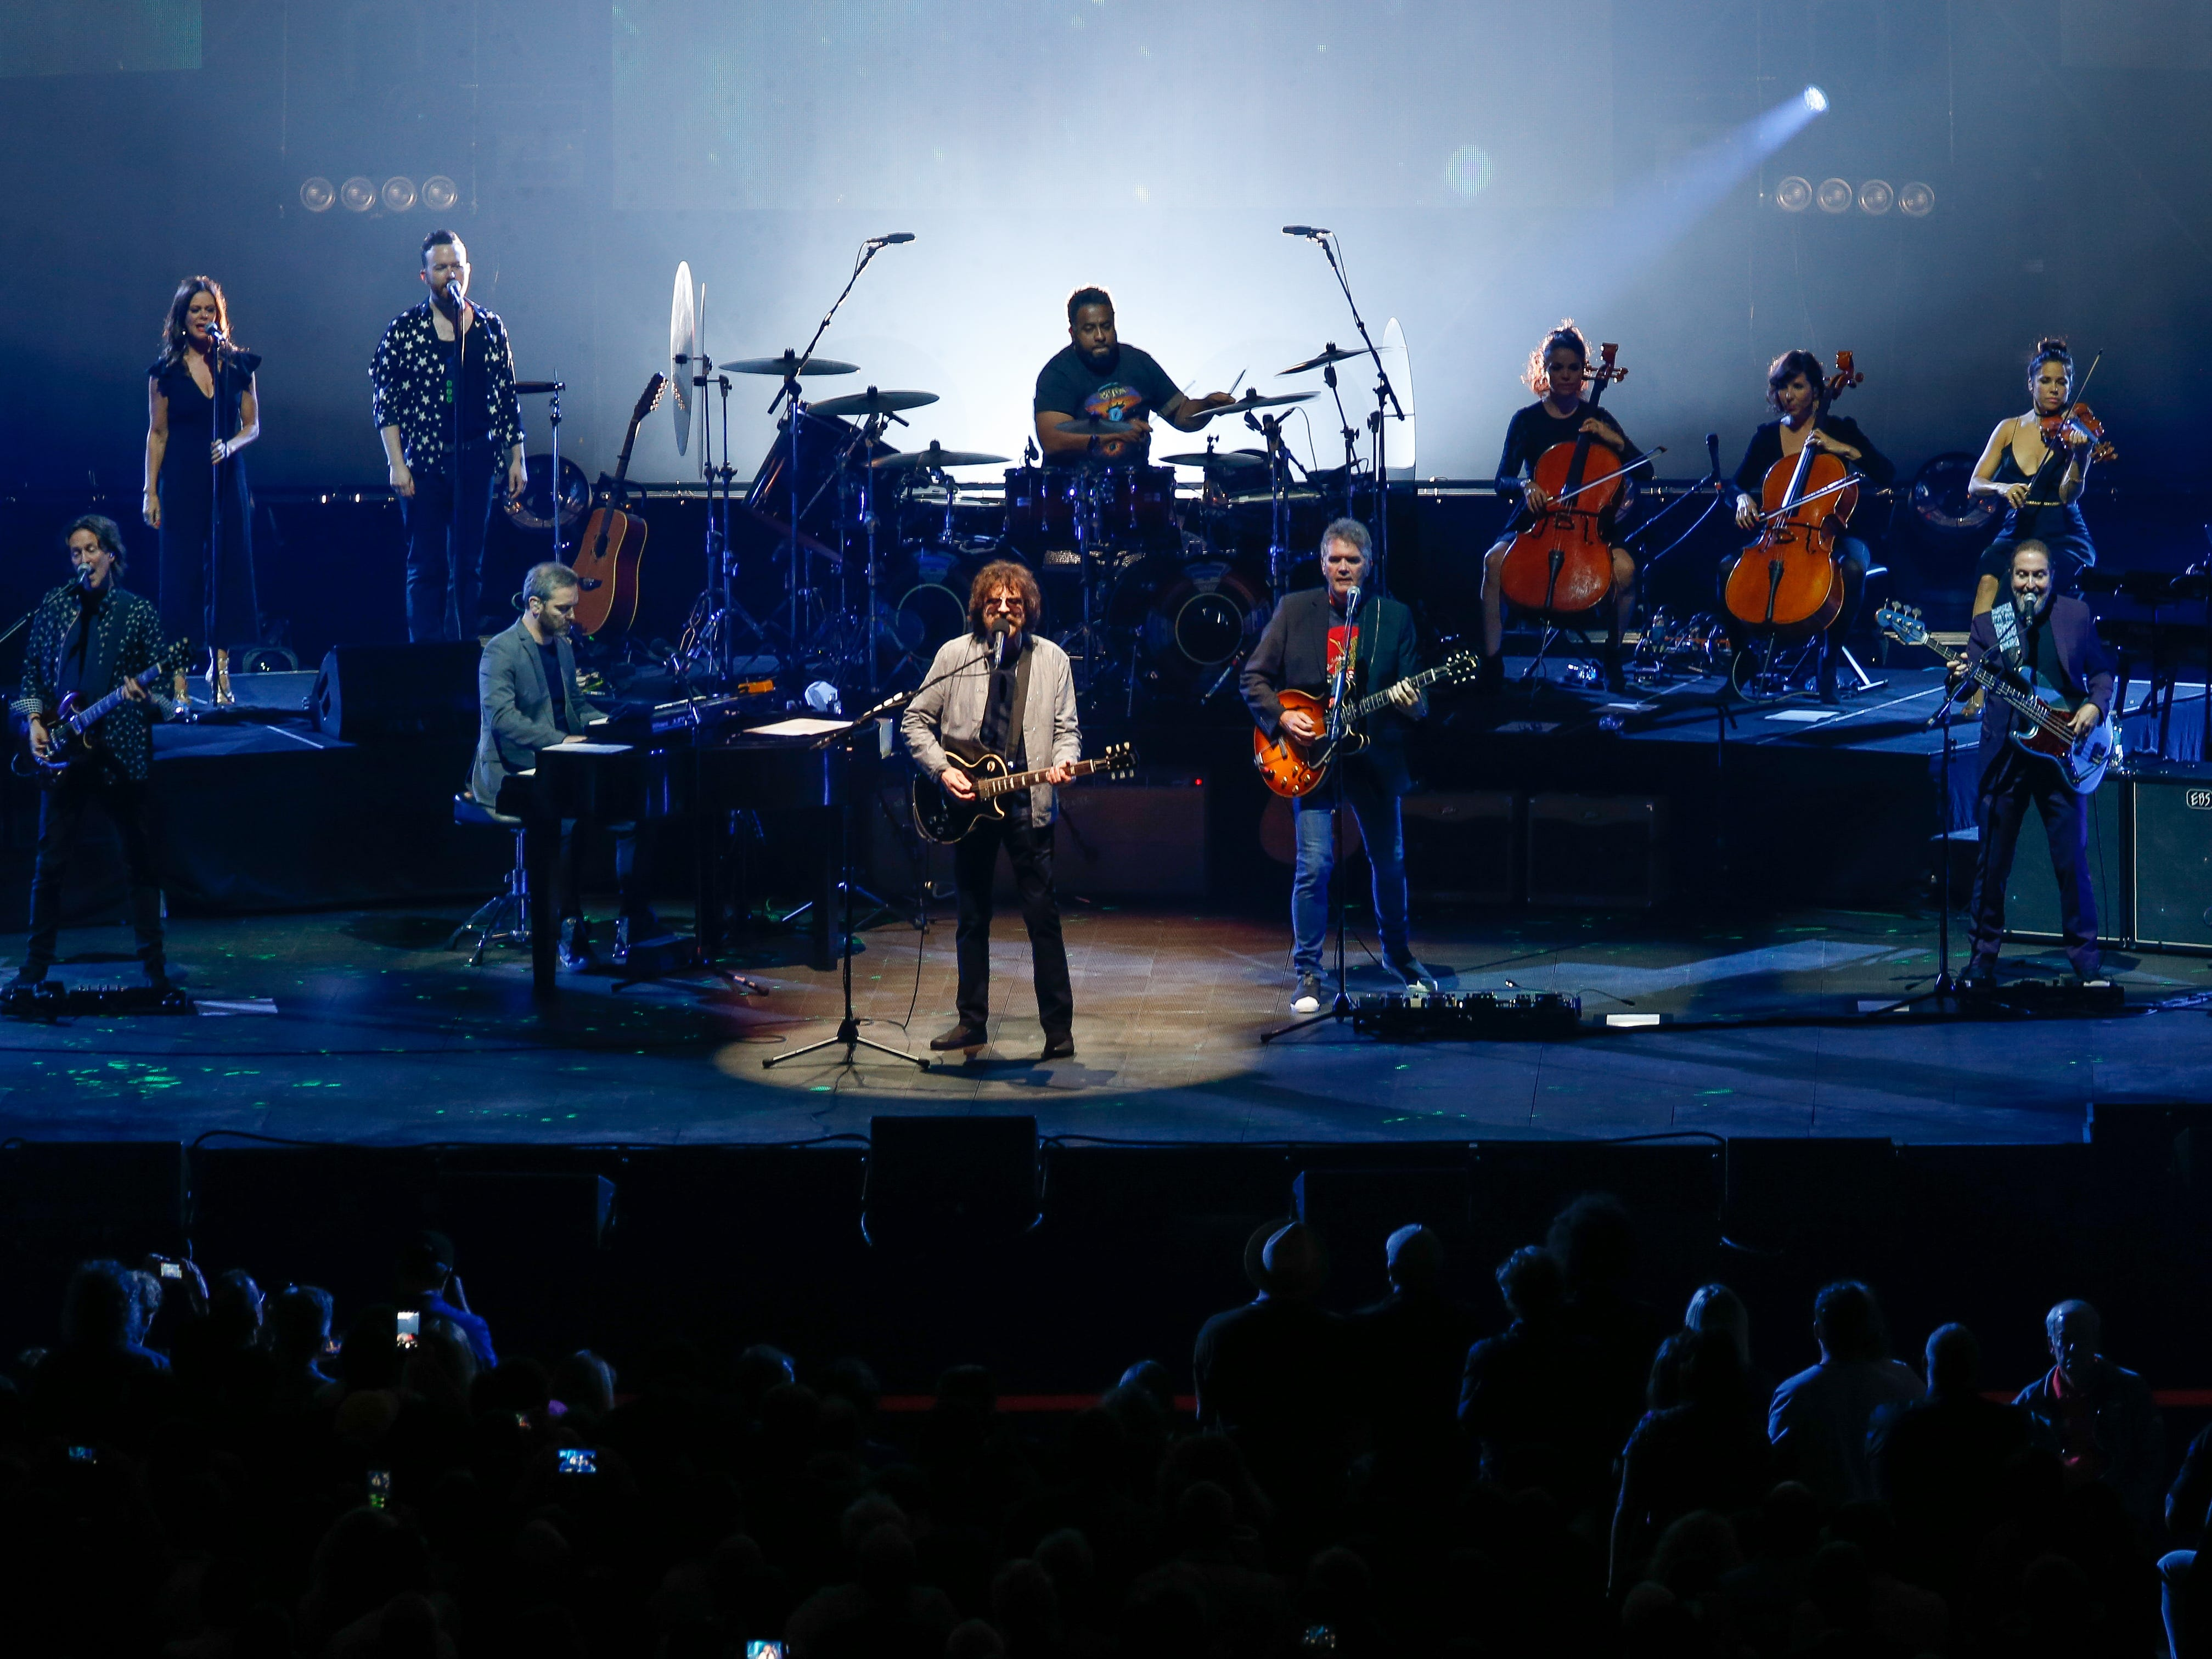 Jeff Lynne's ELO performs Thursday night at Little Caesars Arena in Detroit.